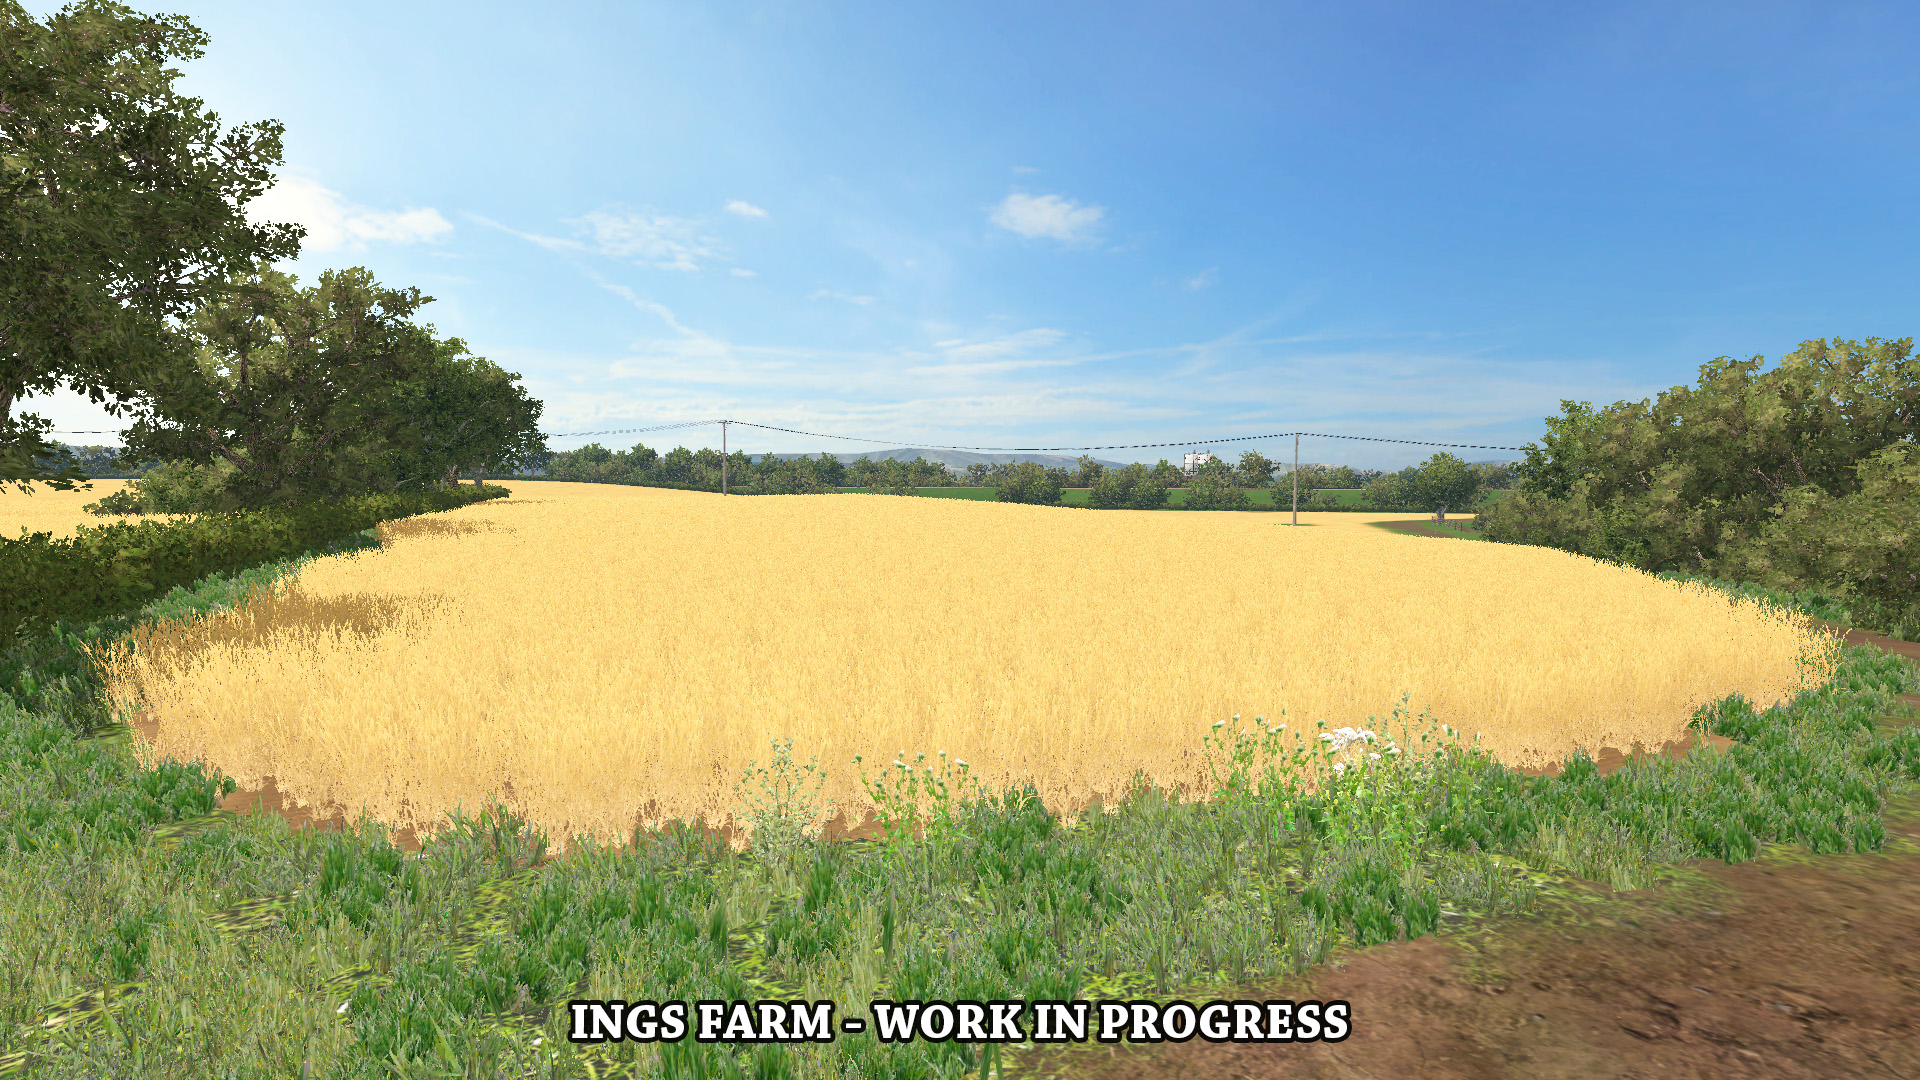 Farming Simulator Ings Farm MAP Video FS Farming - Fs 17 us map